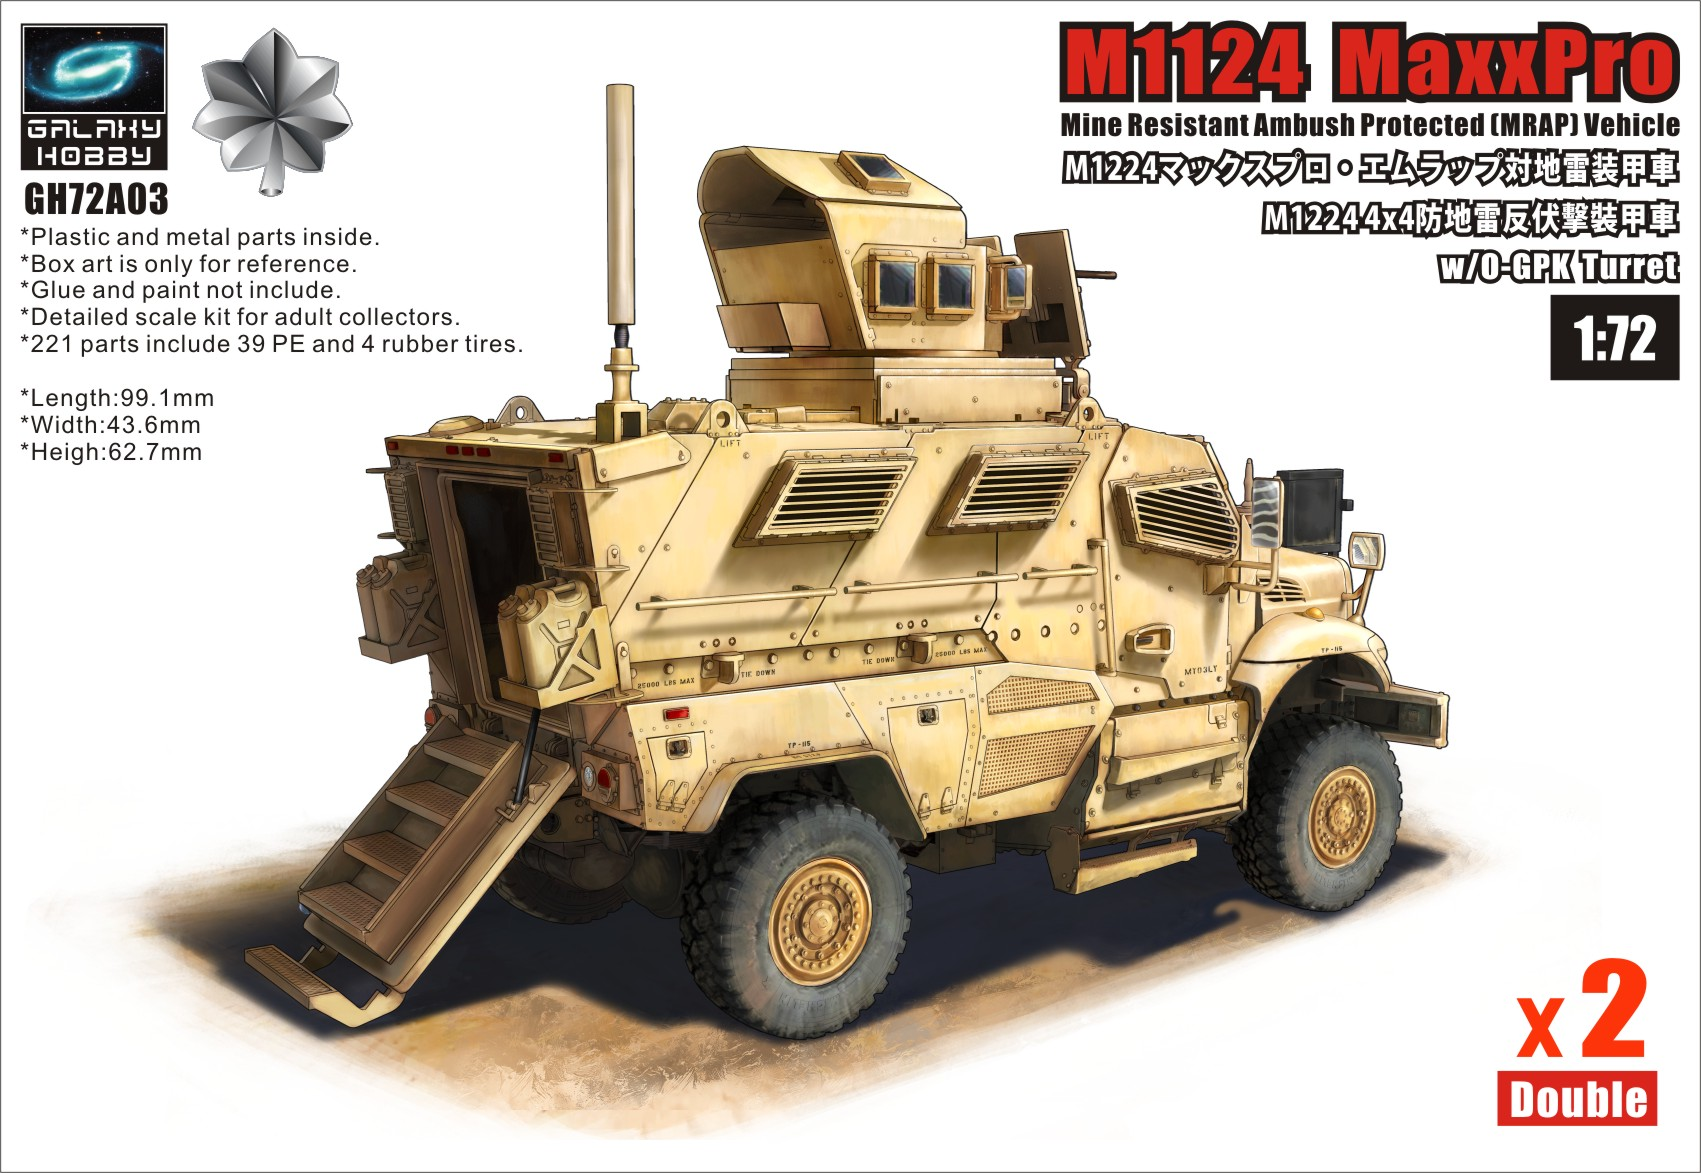 M1224 Maxx Pro MRAP with OGPK turret (2 kits) - Click Image to Close